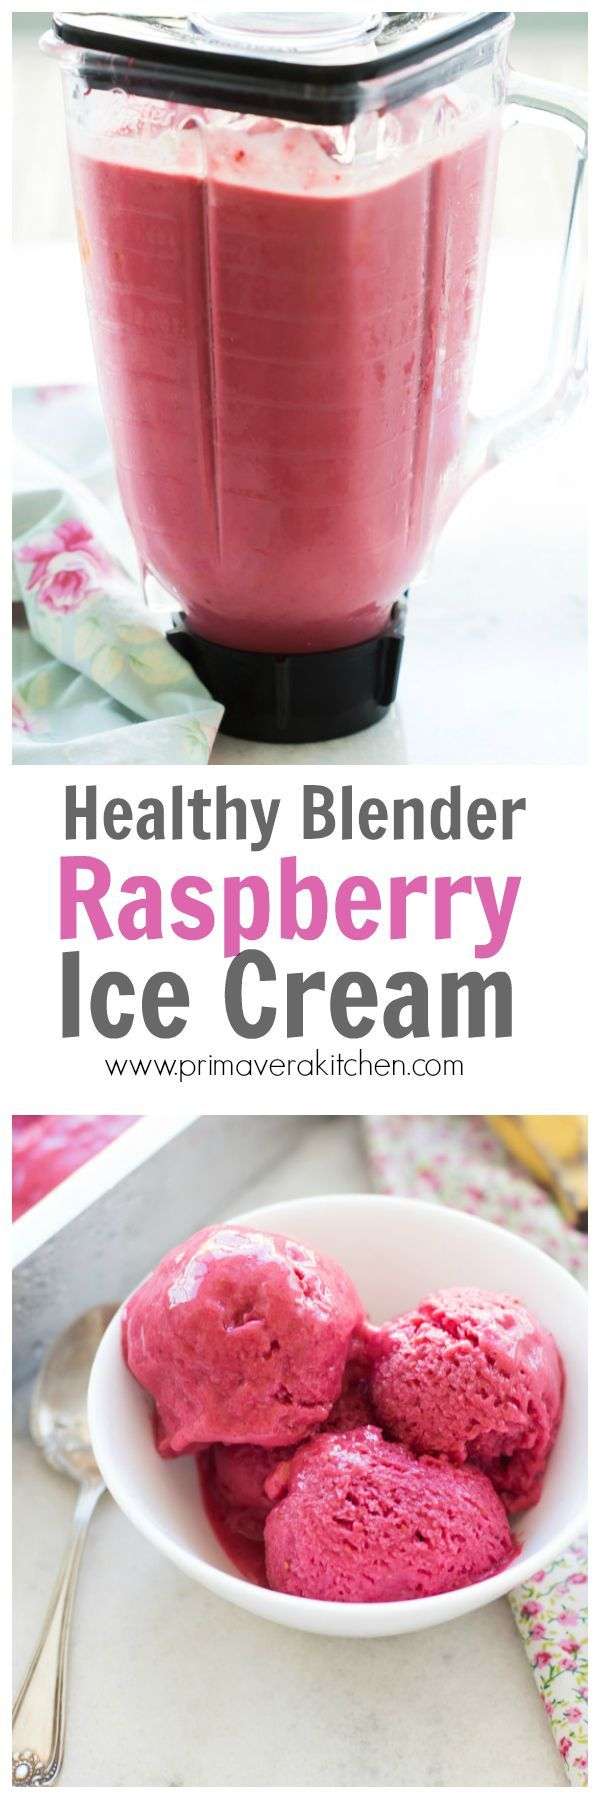 ... ice cream, Black raspberry ice cream and White chocolate ice cream